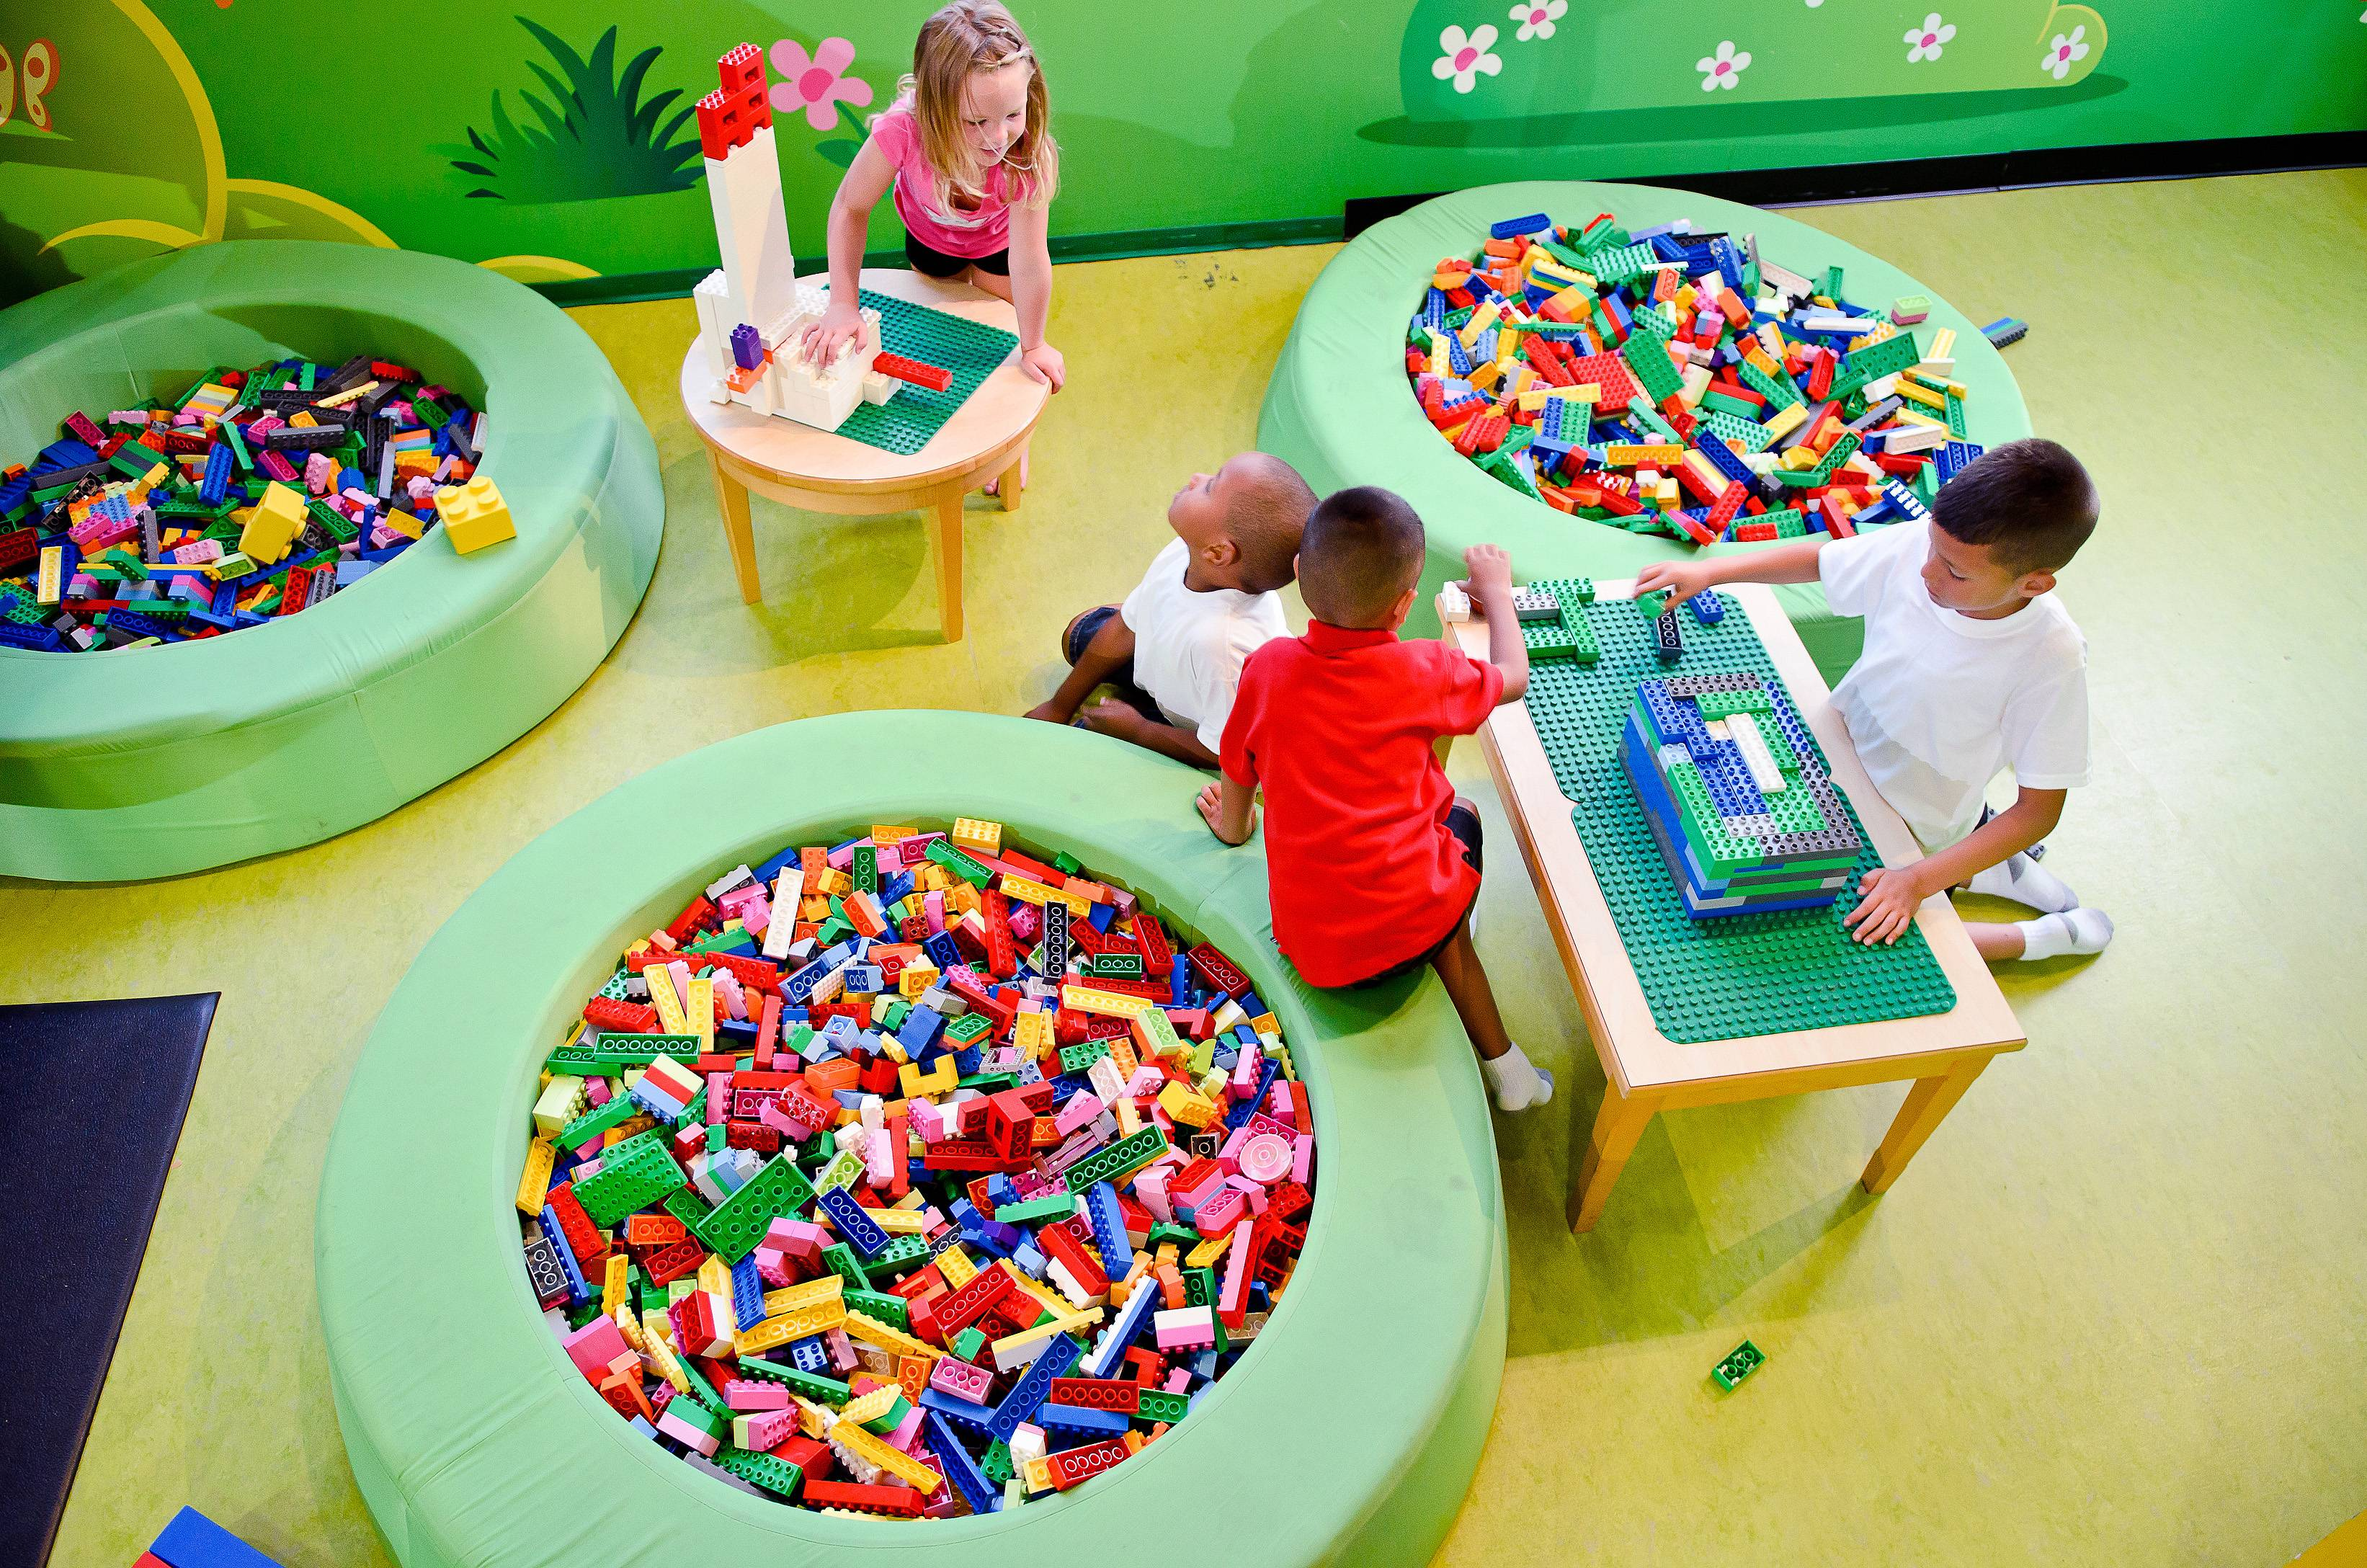 Children's imaginations know no bounds at Legoland Discover Center in Schaumburg.